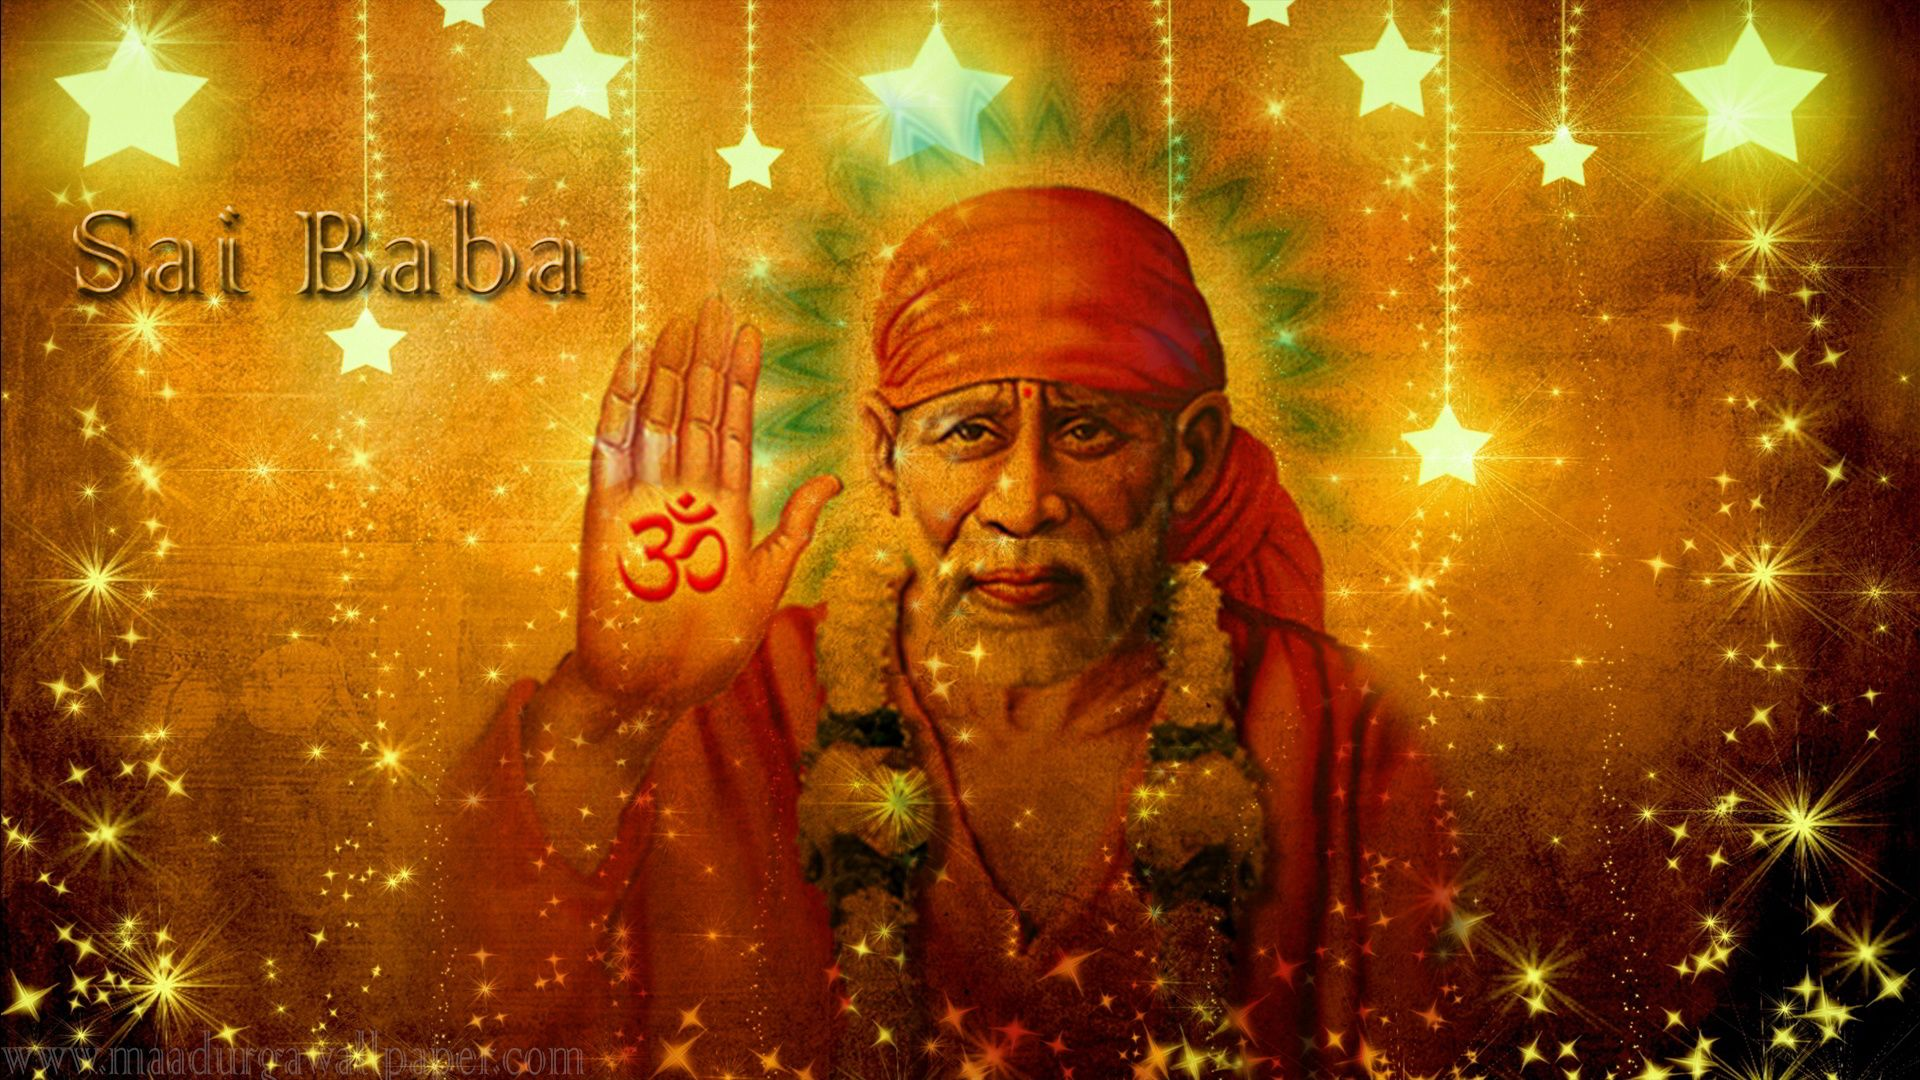 Sai Baba Wallpapers - Top Free Sai Baba Backgrounds